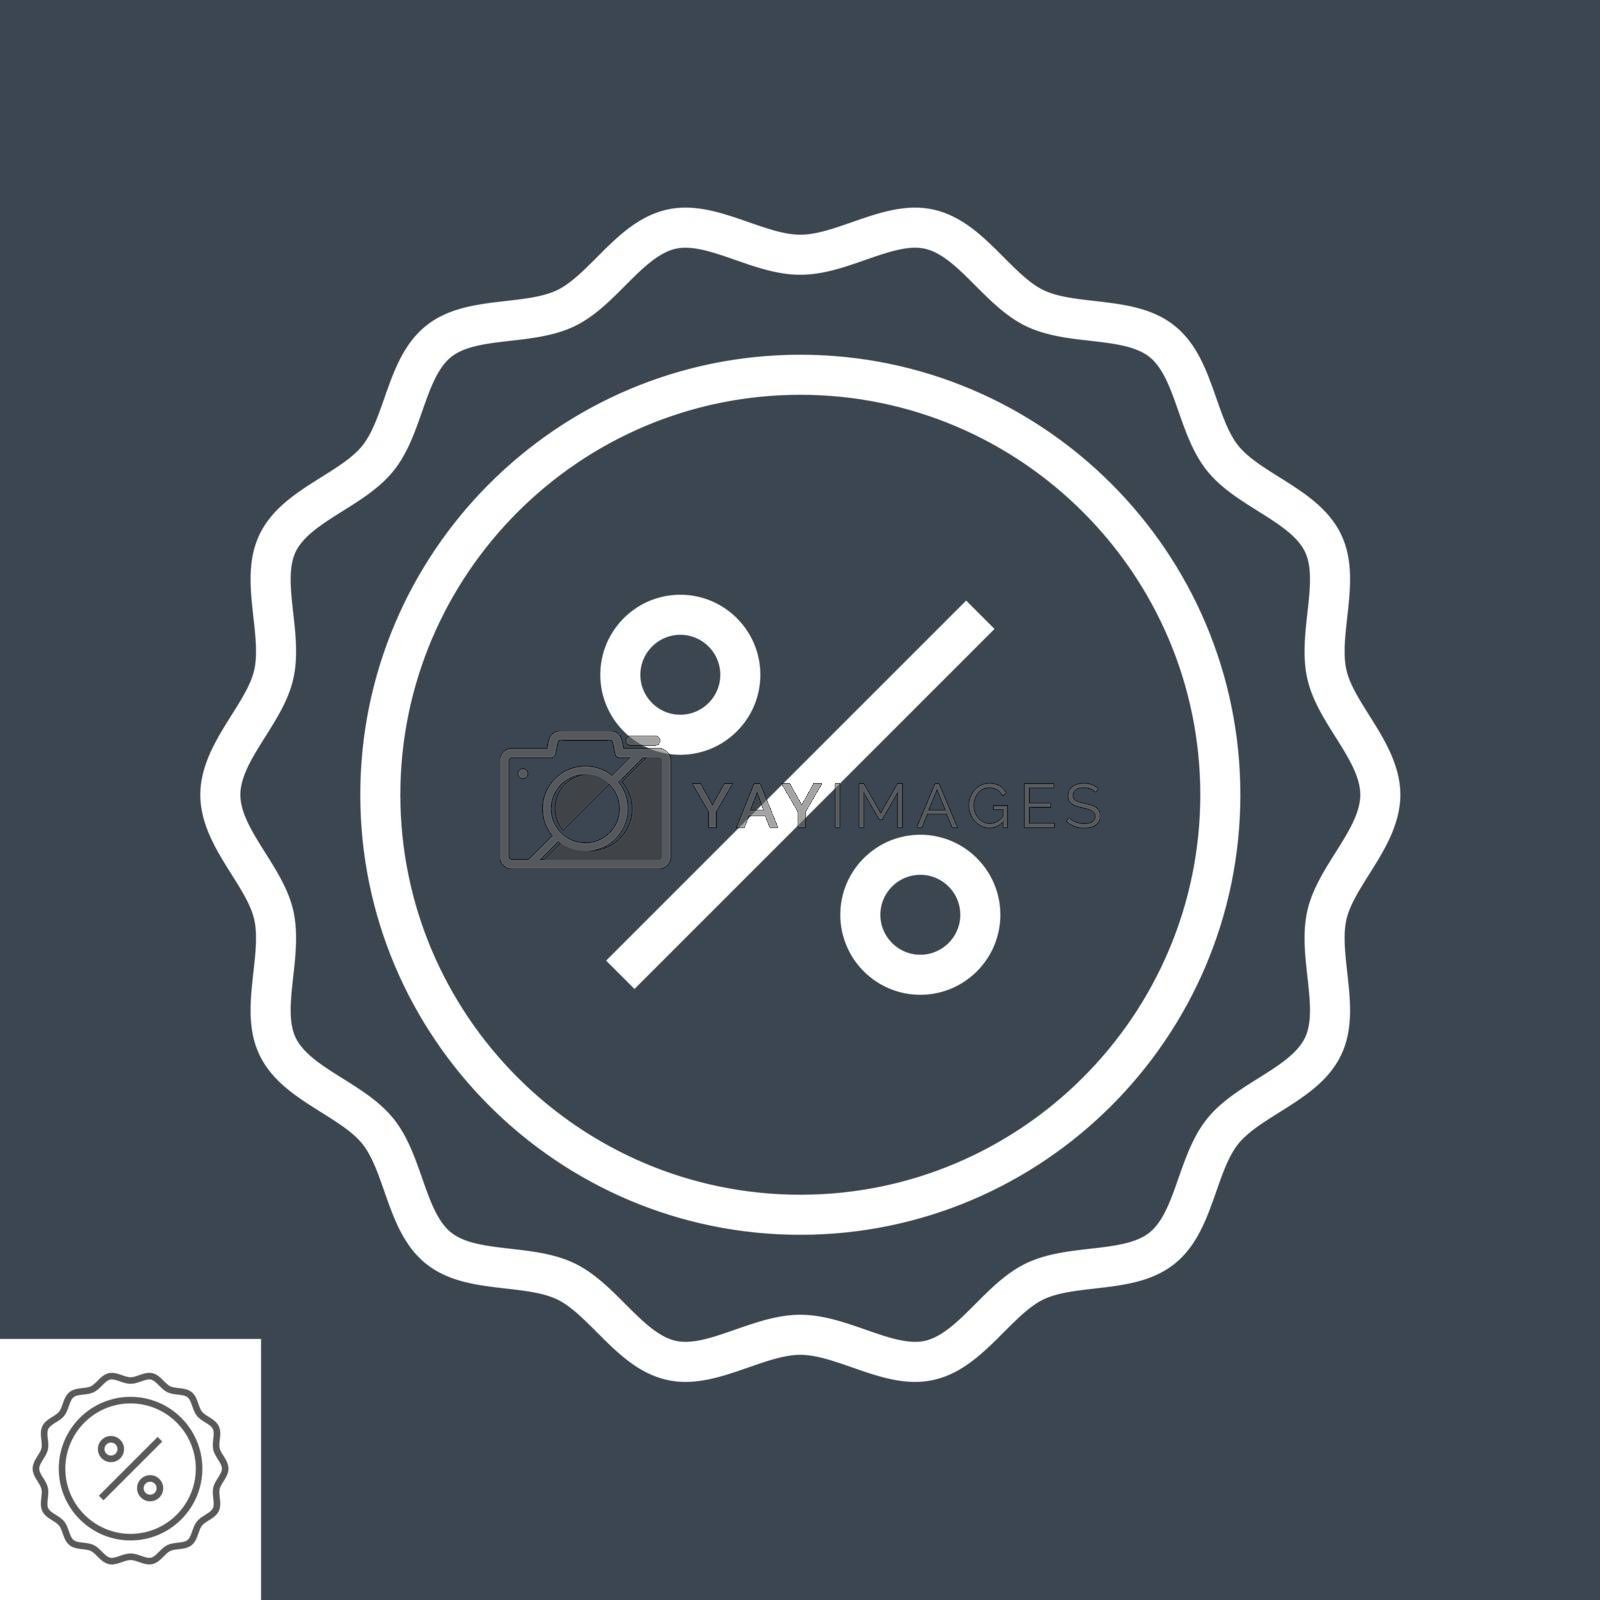 Percent Badge Thin Line Vector Icon. Flat icon isolated on the black background. Editable EPS file. Vector illustration.